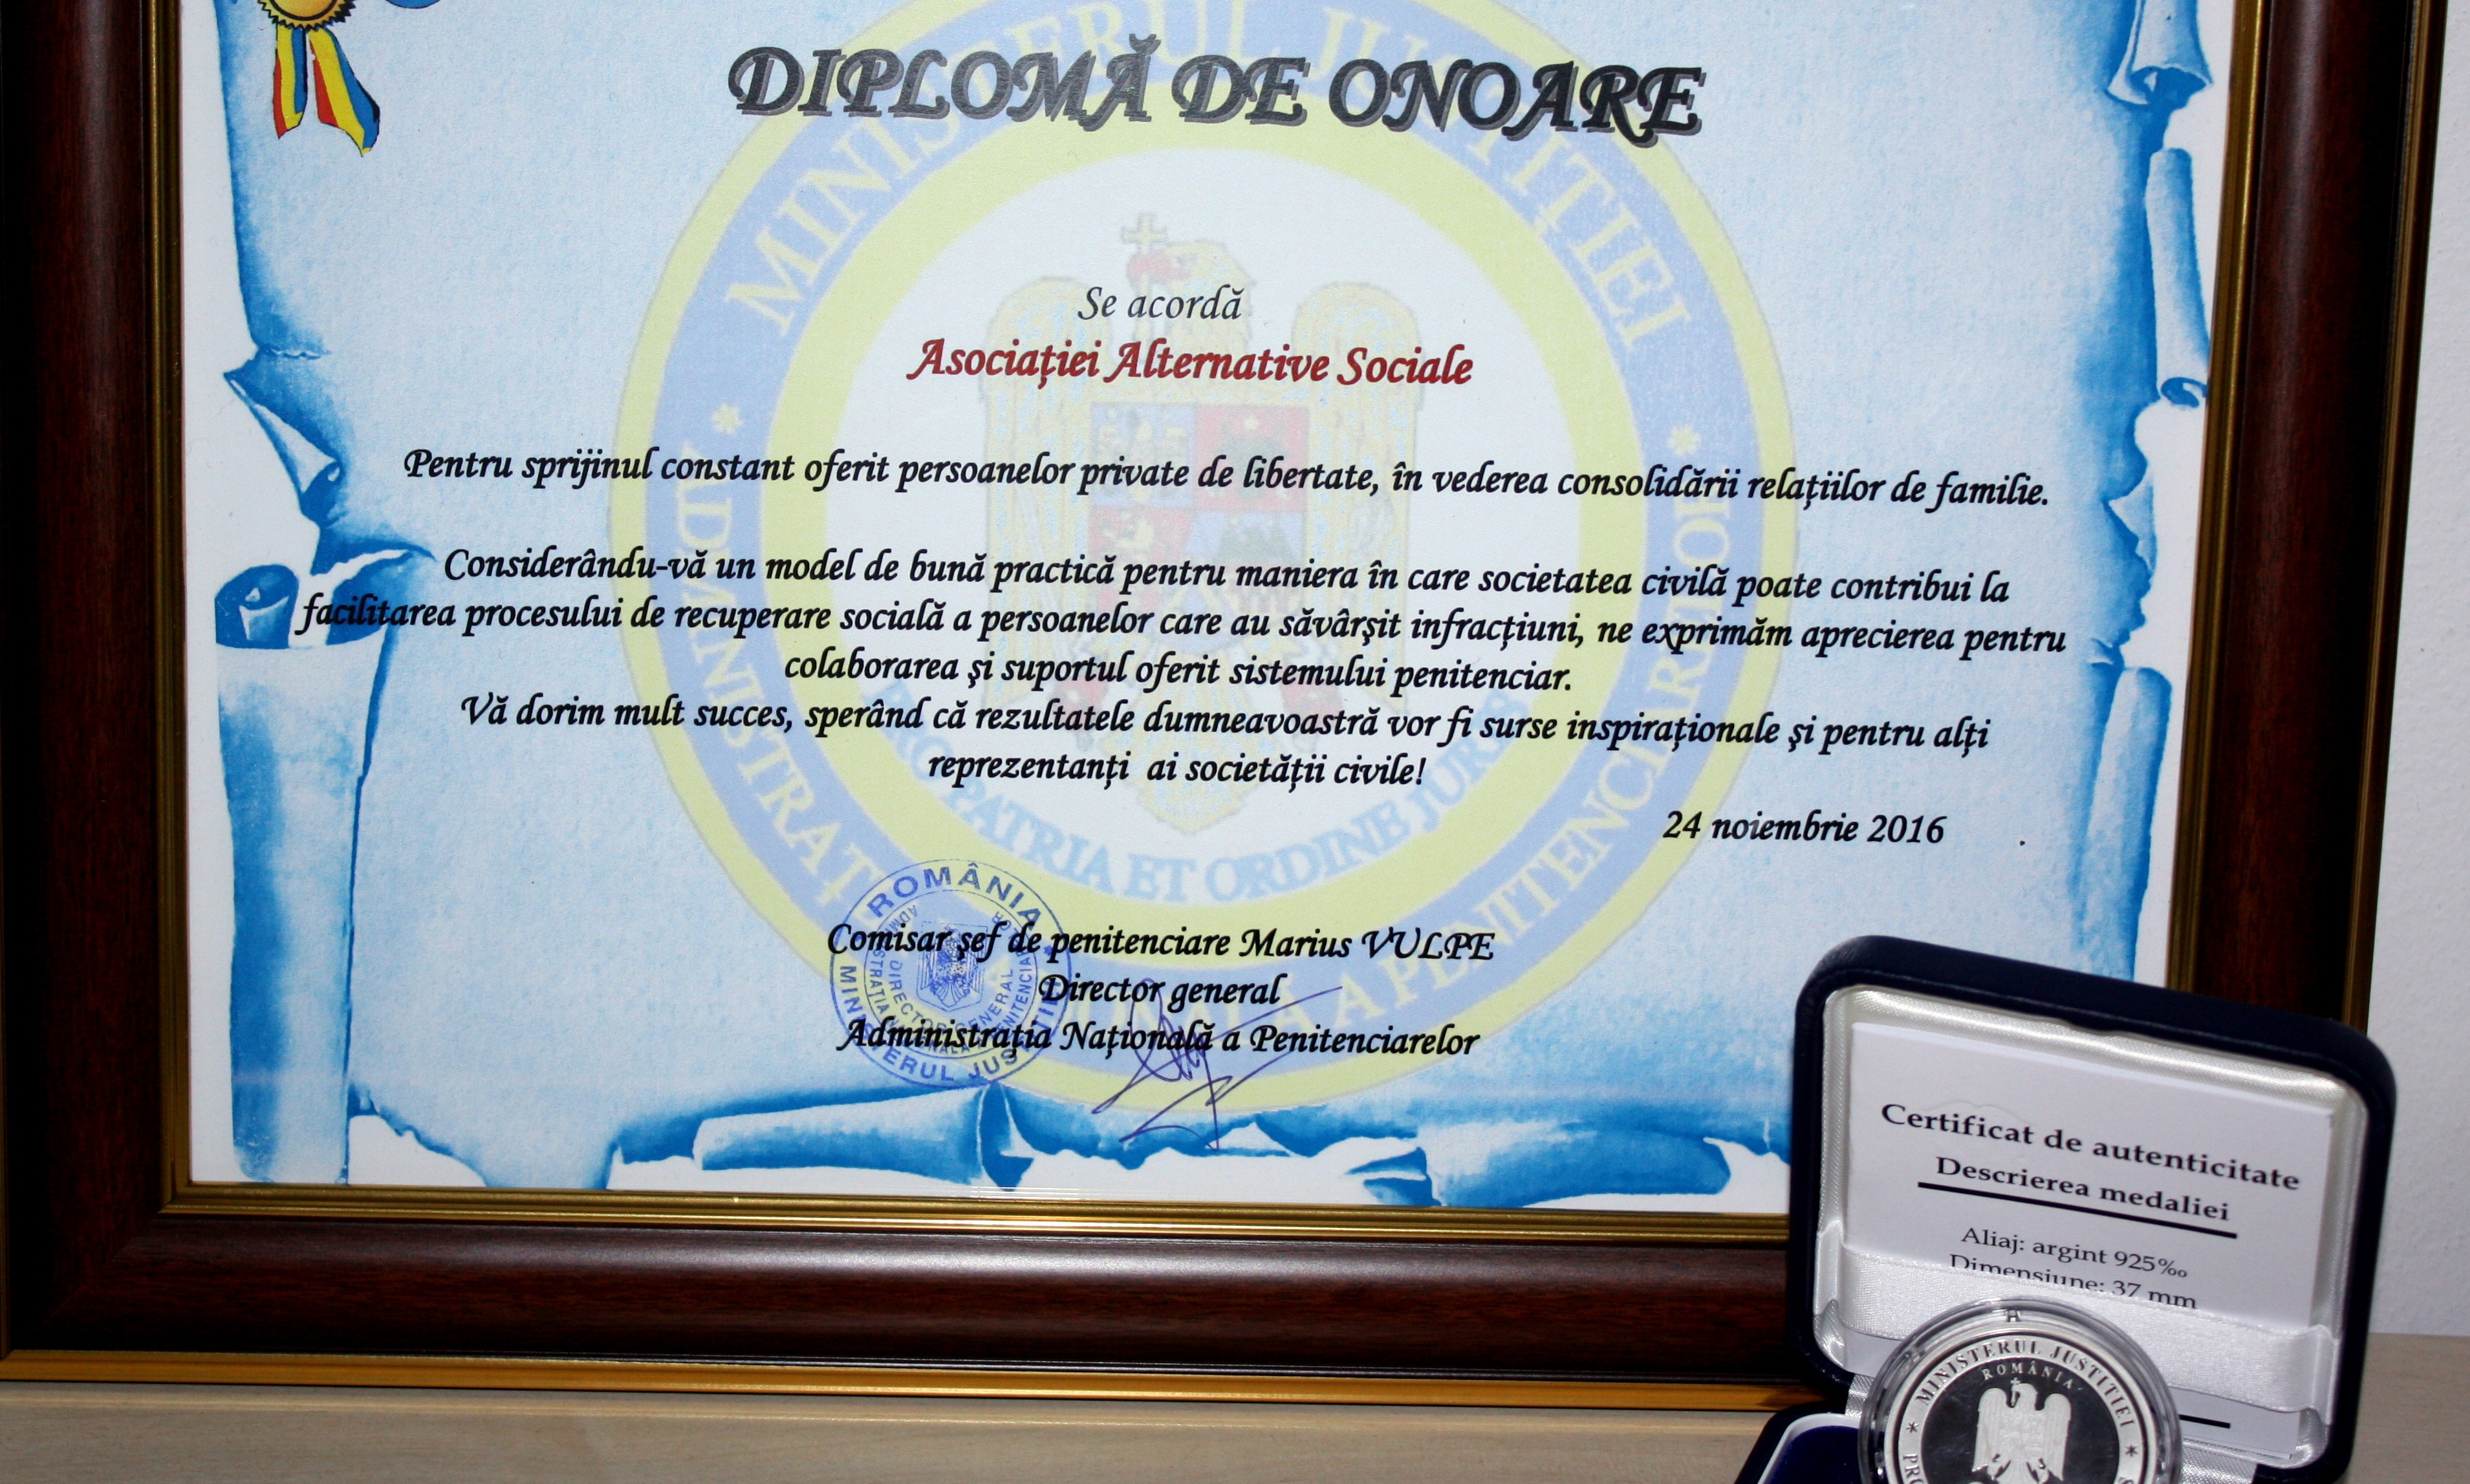 Alternative Sociale Receives an Award from the Romanian National Prison Administration